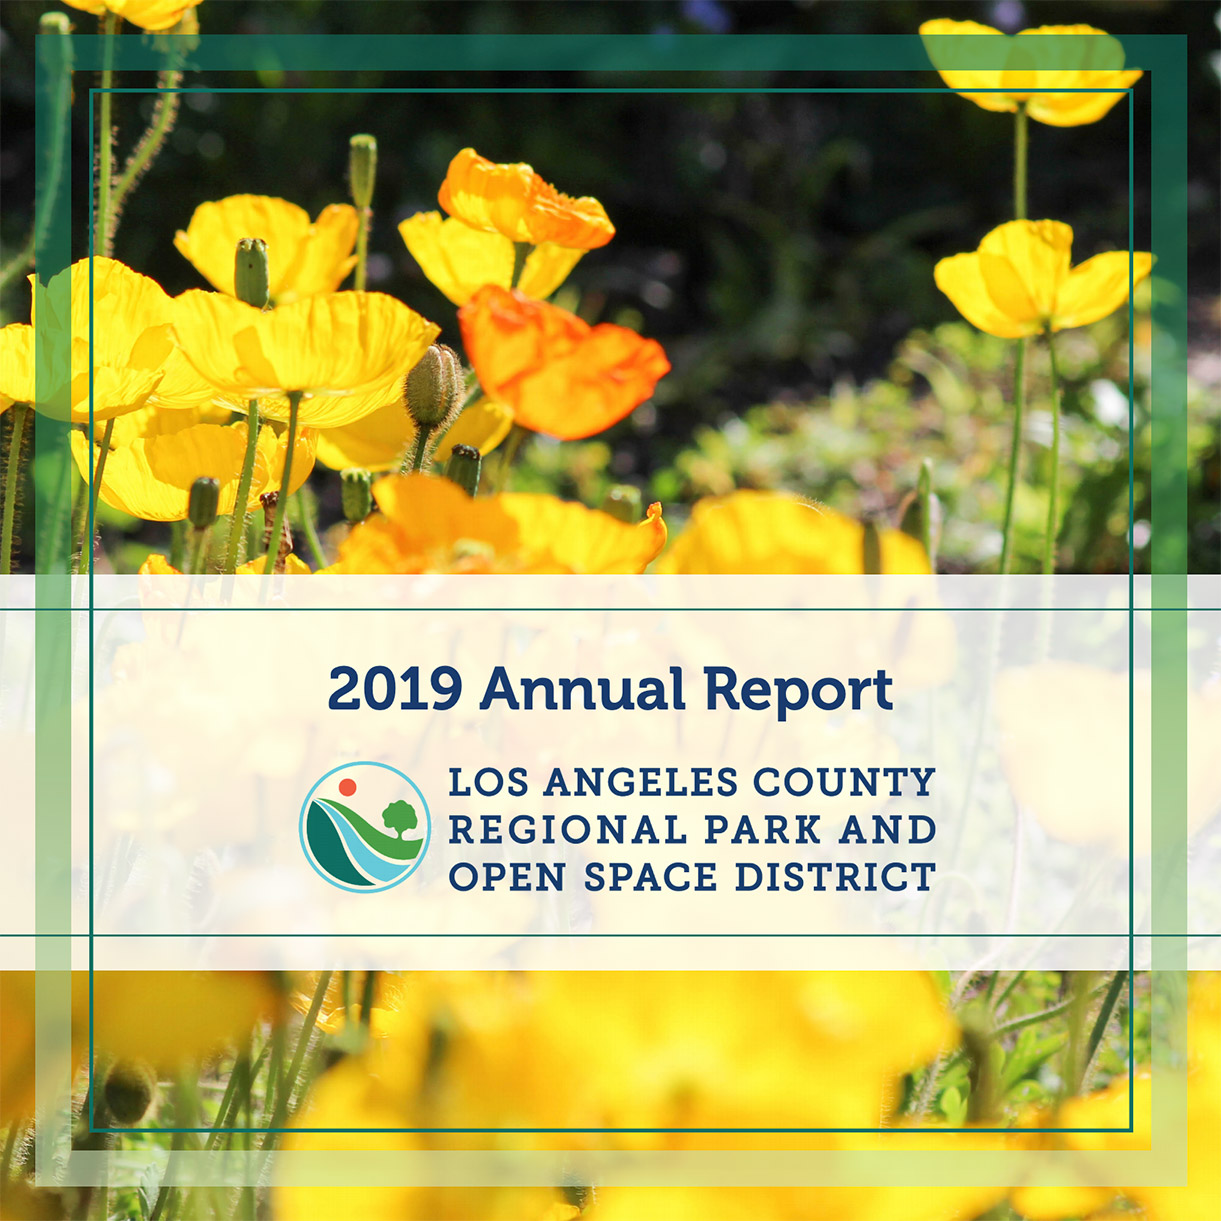 Image of the 2019 annual report cover page.